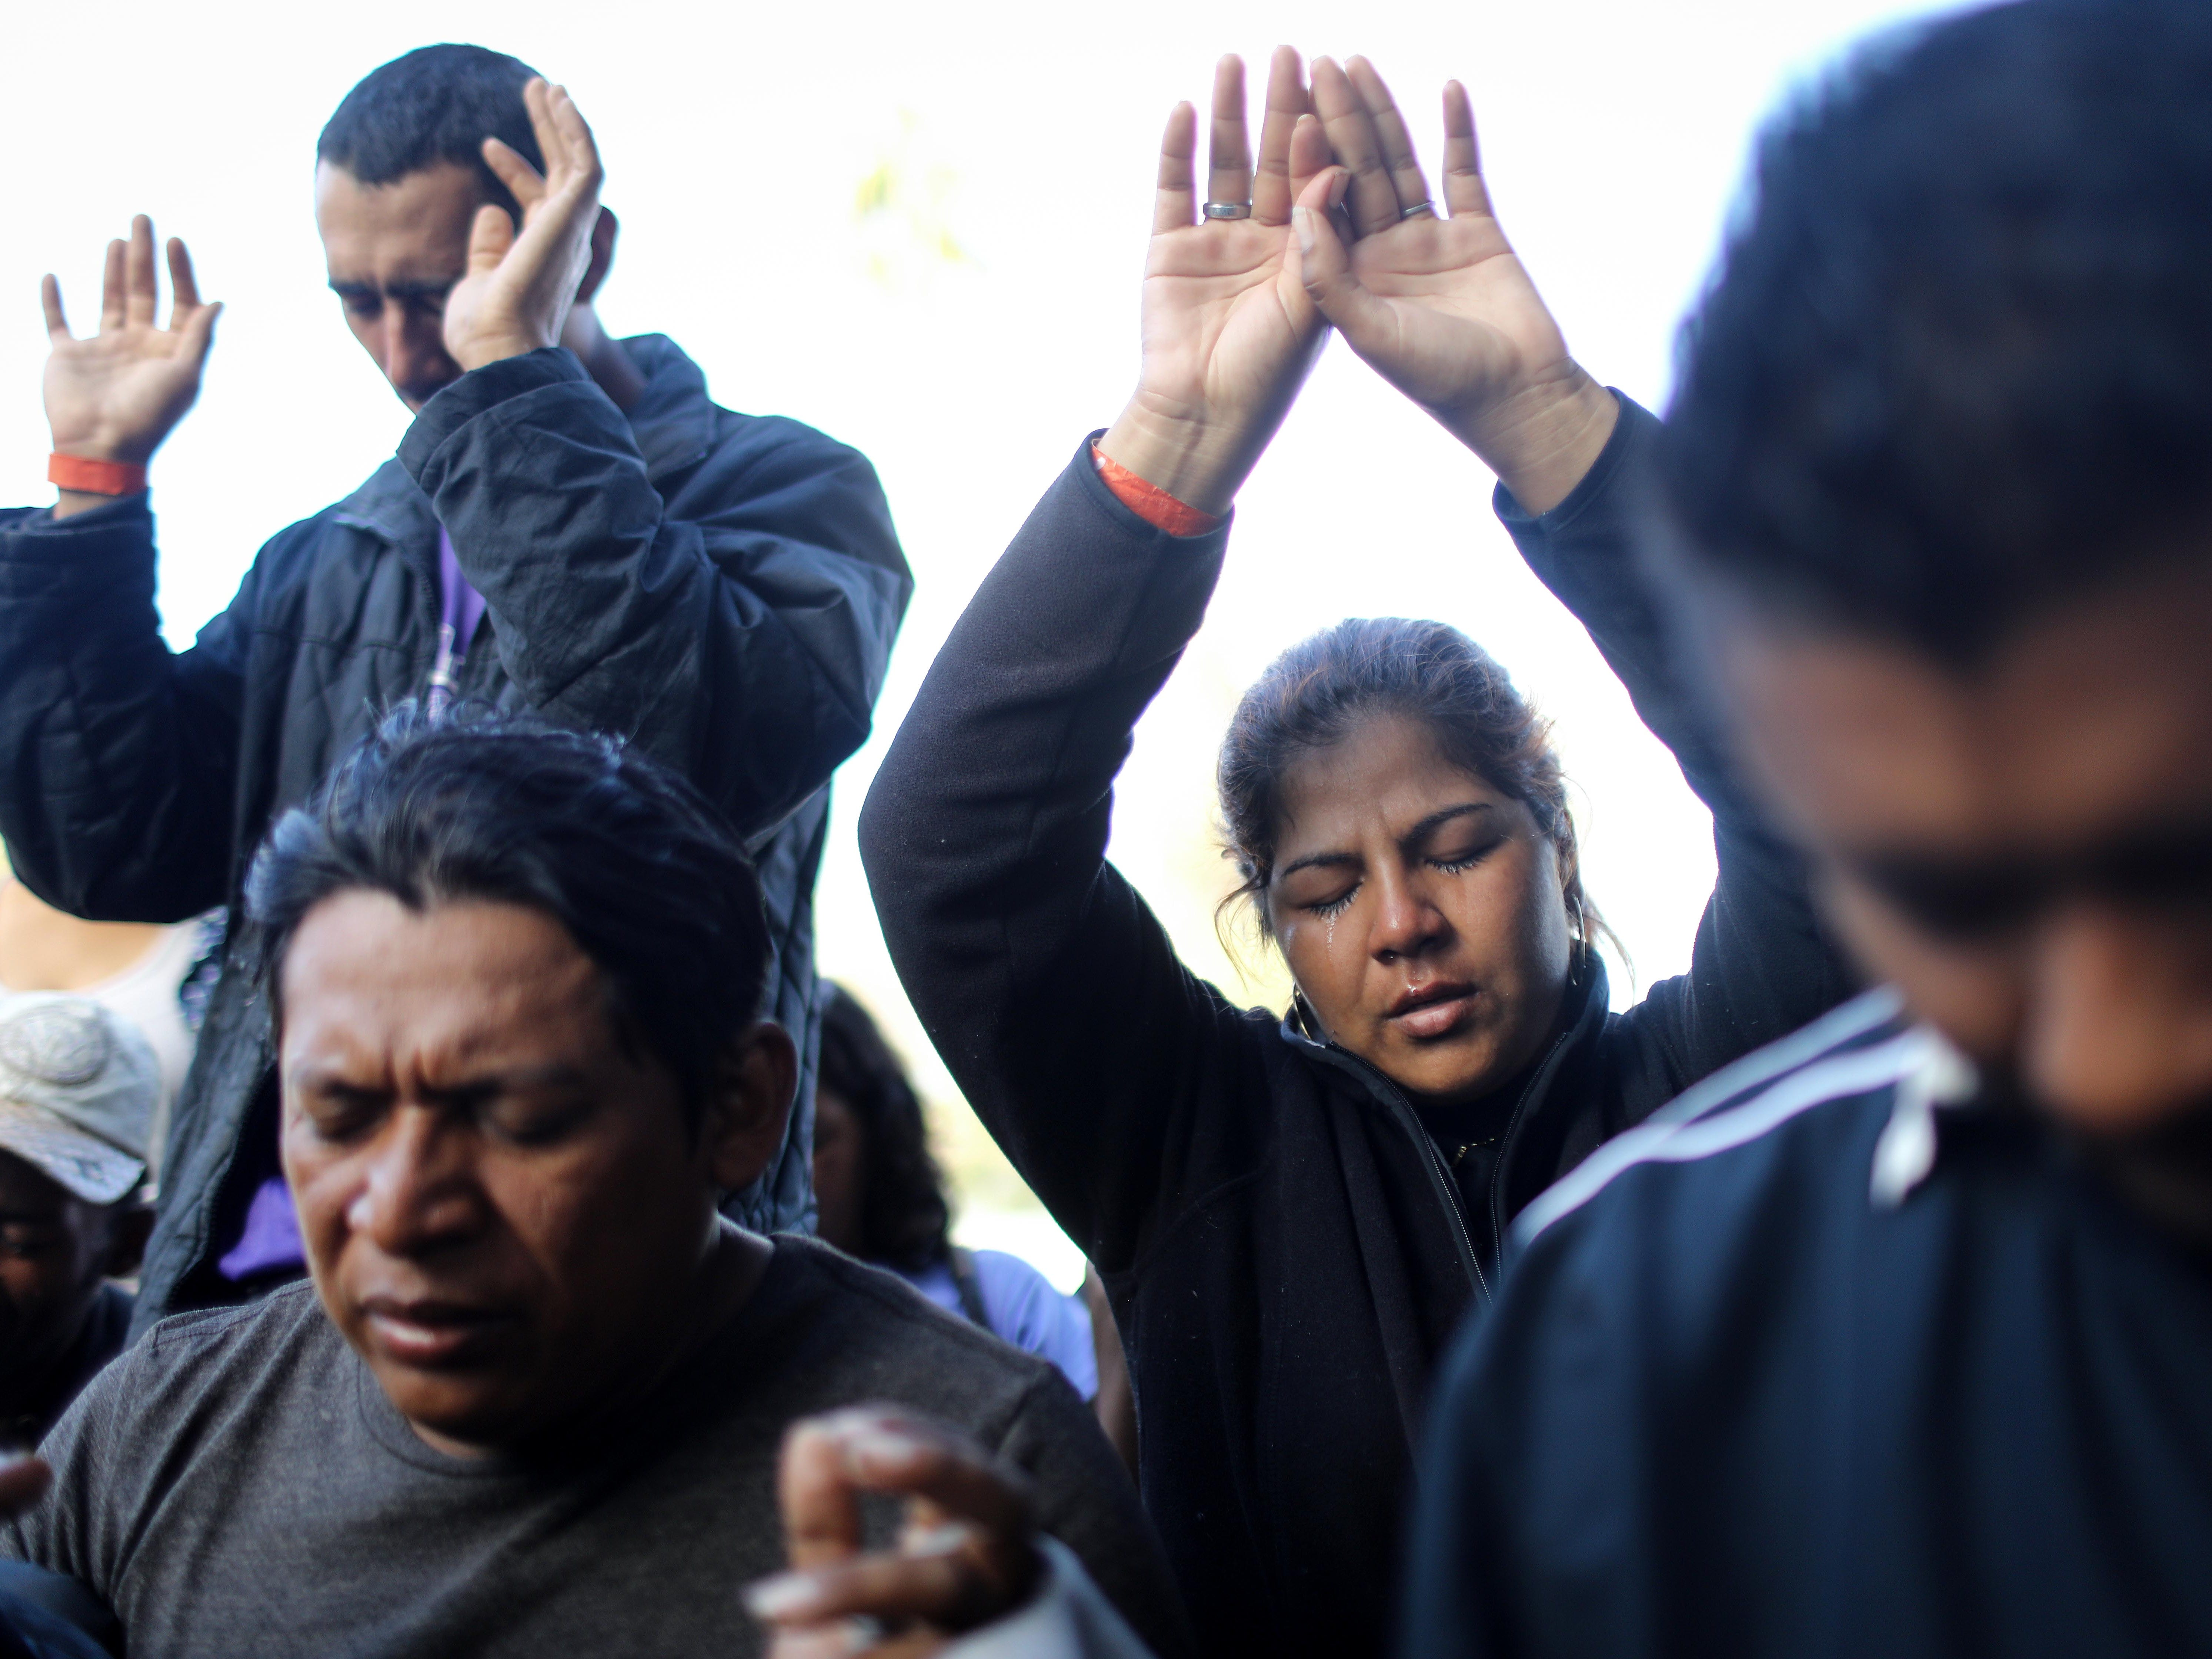 Members of the 'migrant caravan' worship during a street worship service outside a temporary shelter set up for members of the caravan on Nov. 23, 2018 in Tijuana, Mexico.